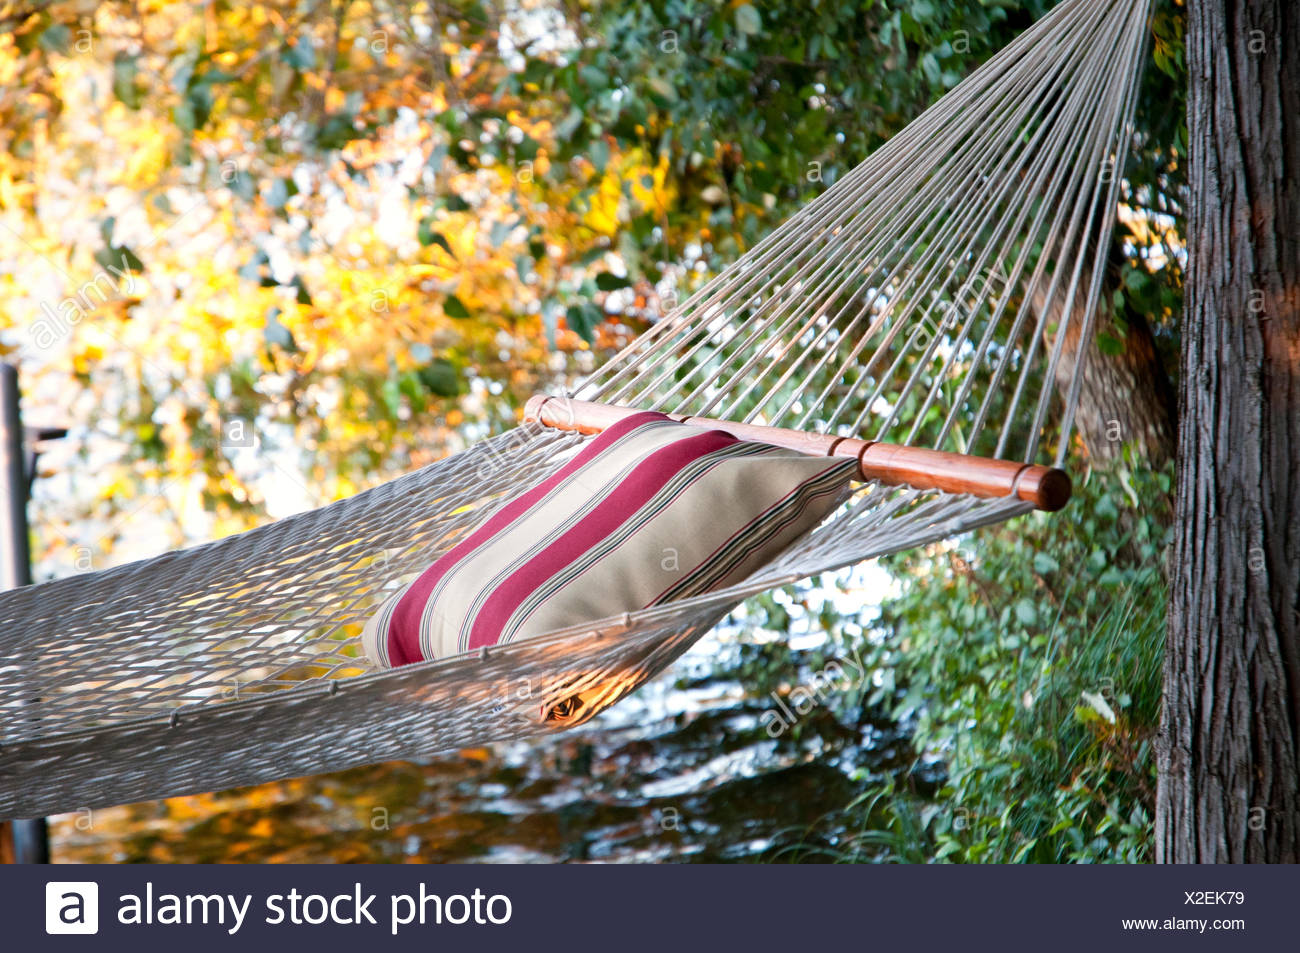 A hammock waits for a lazy afternoon by Langford Lake, near Victoria, BC Canada, a freshwater lake for swimming, relaxing and - Stock Image